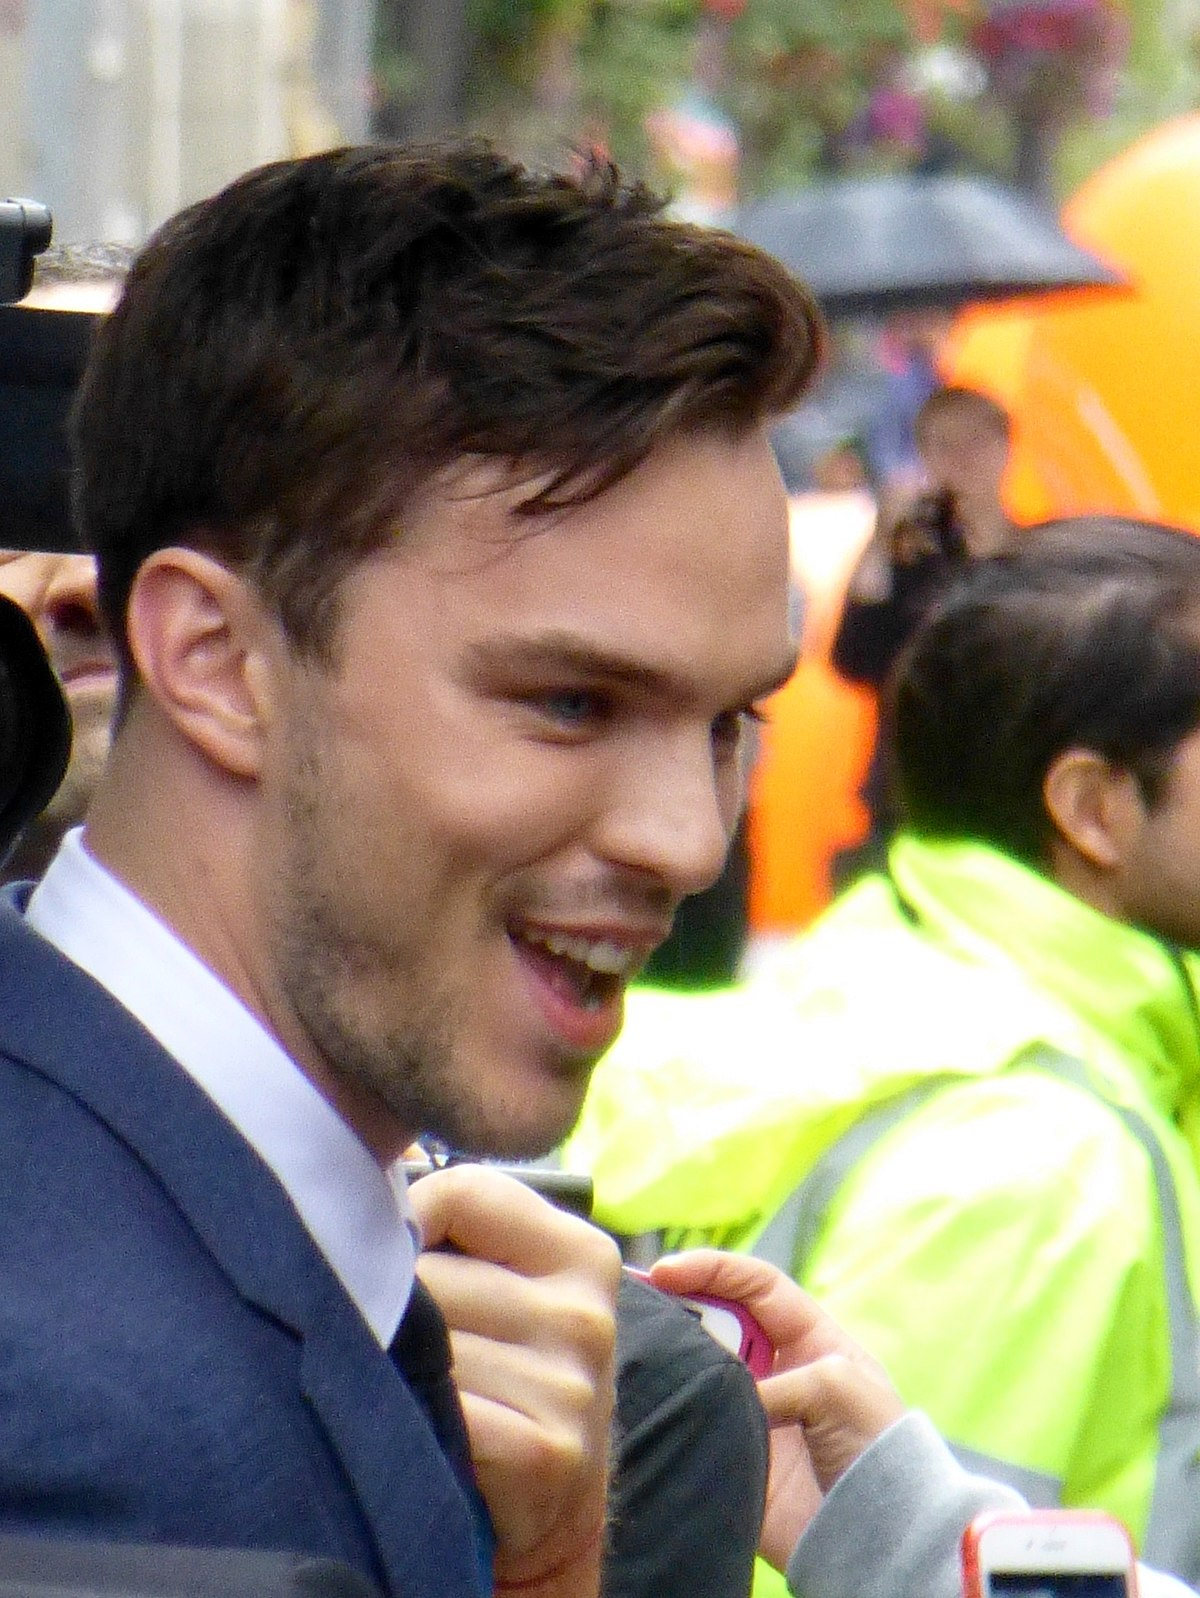 Nicholas hoult days of future past